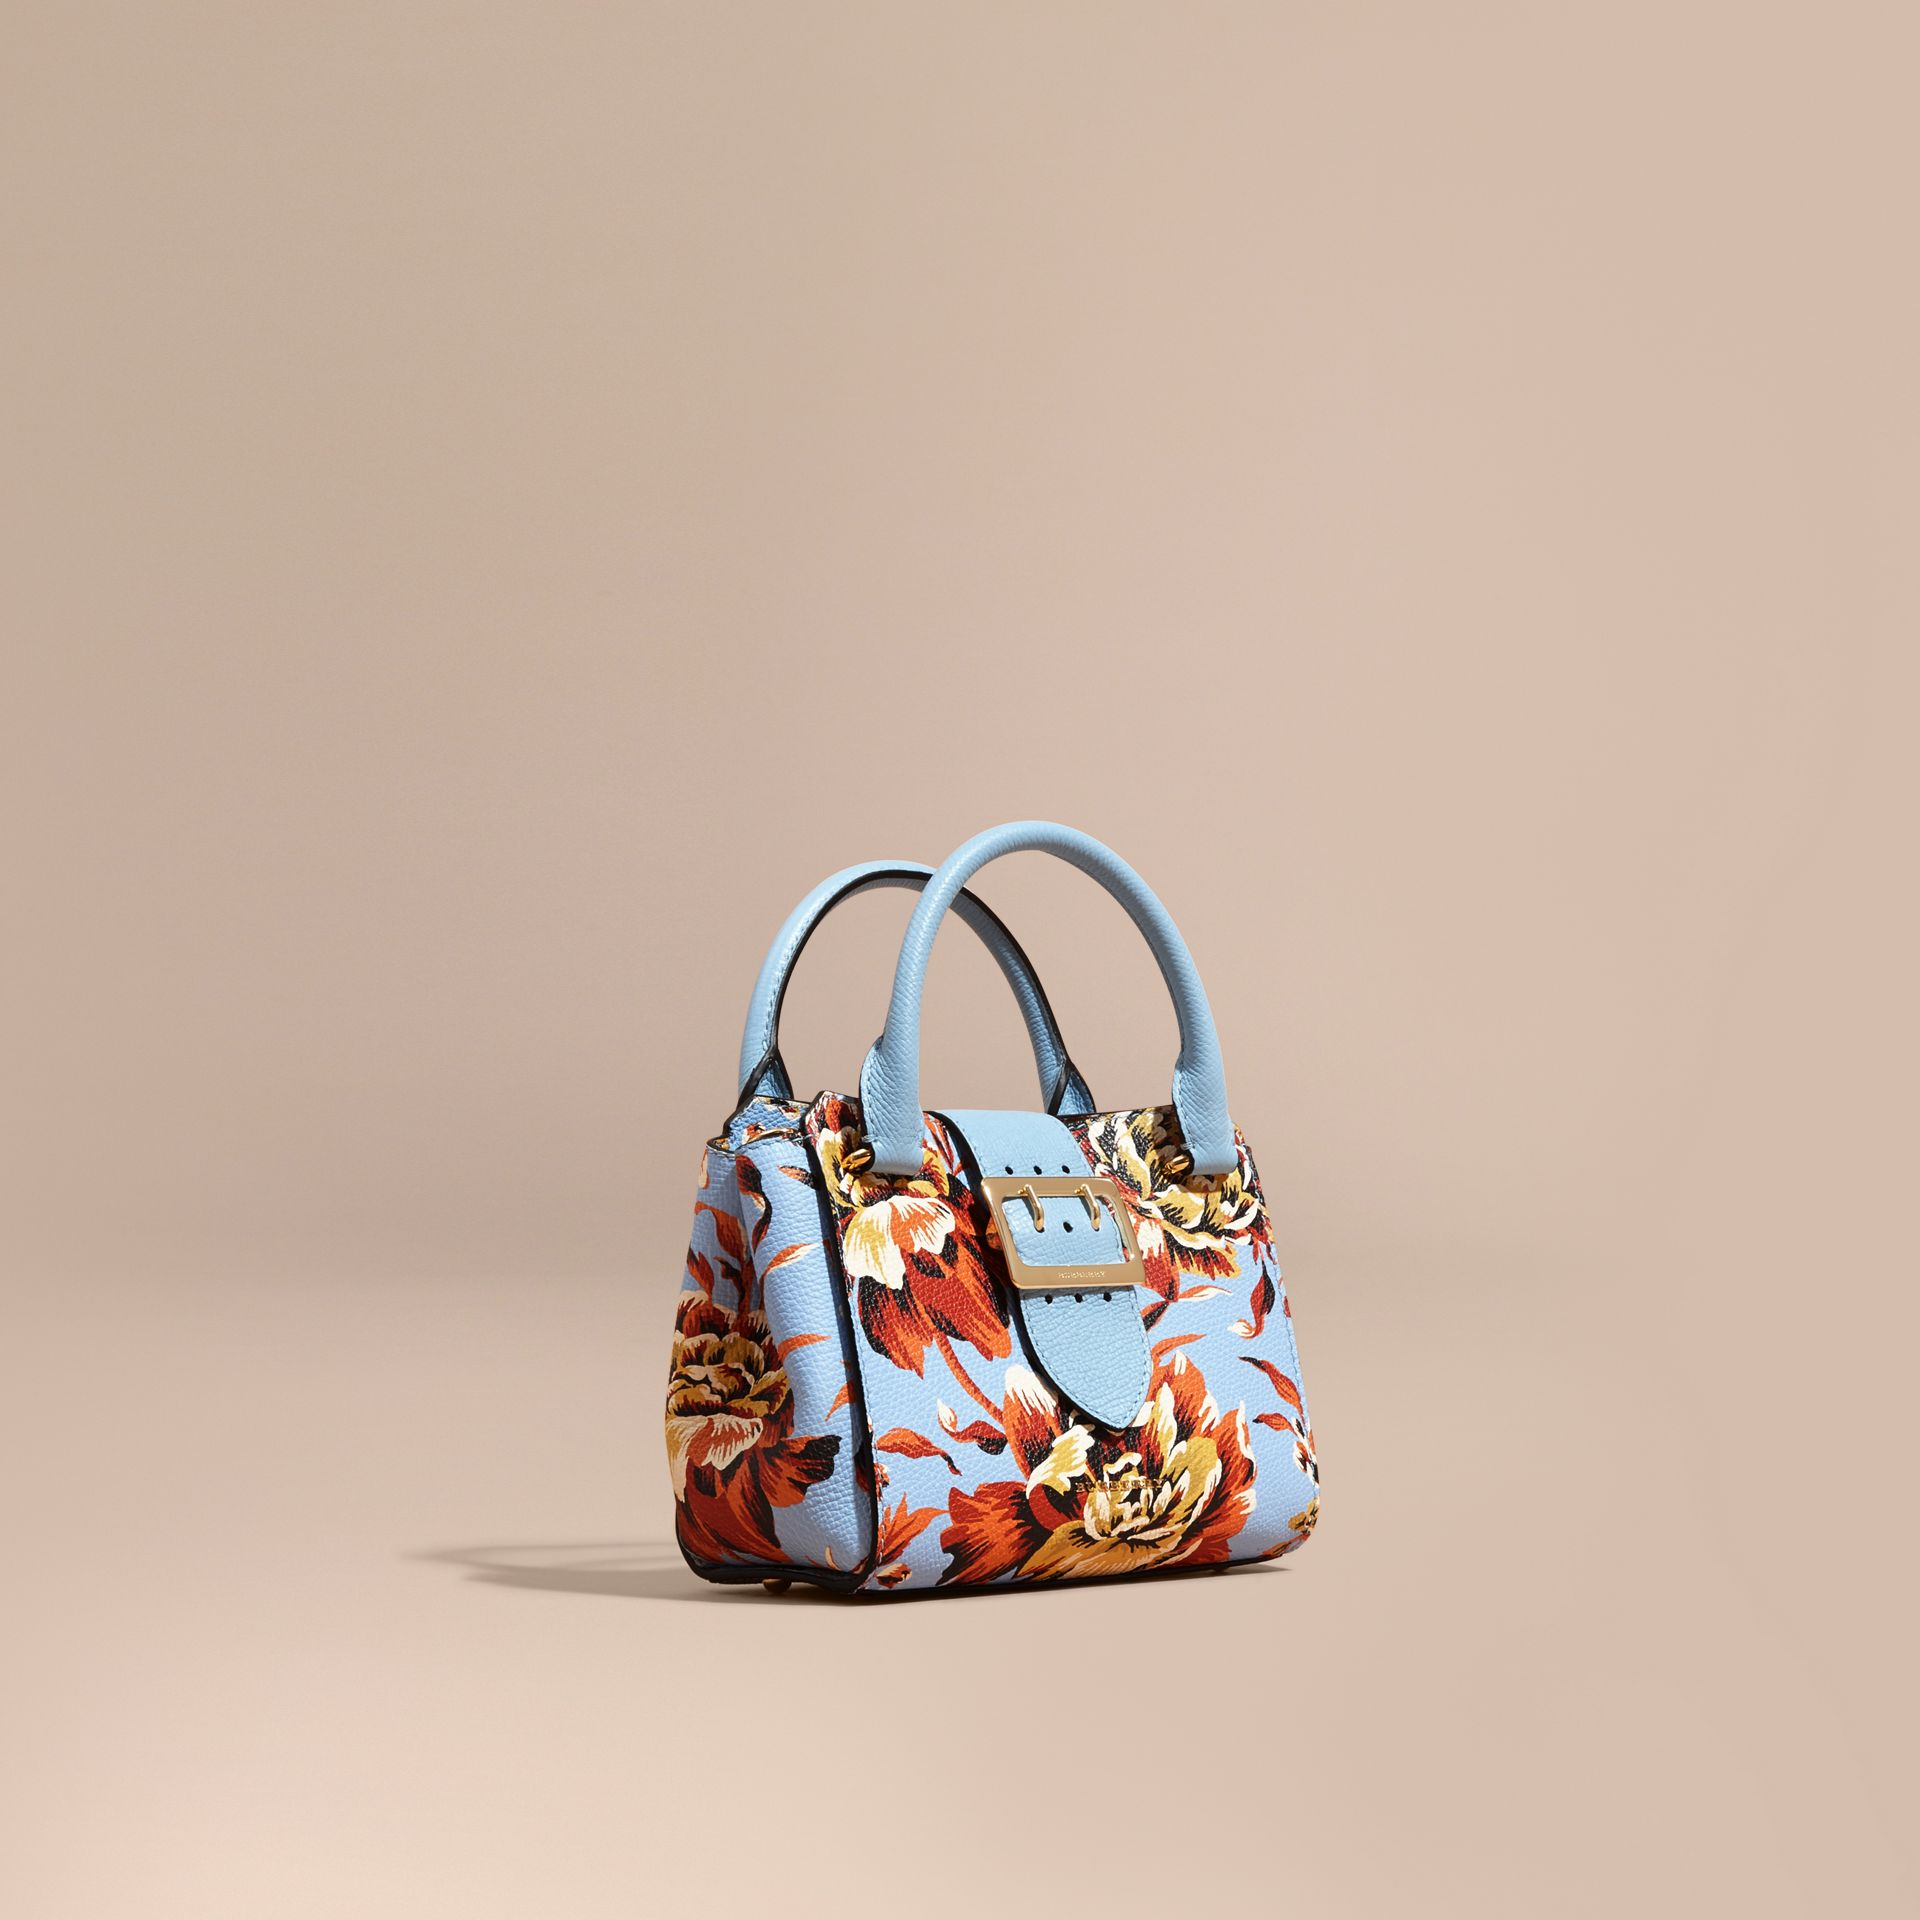 Pale blue/vibrant orange The Small Buckle Tote in Peony Rose Print Leather Pale Blue/vibrant Orange - gallery image 1